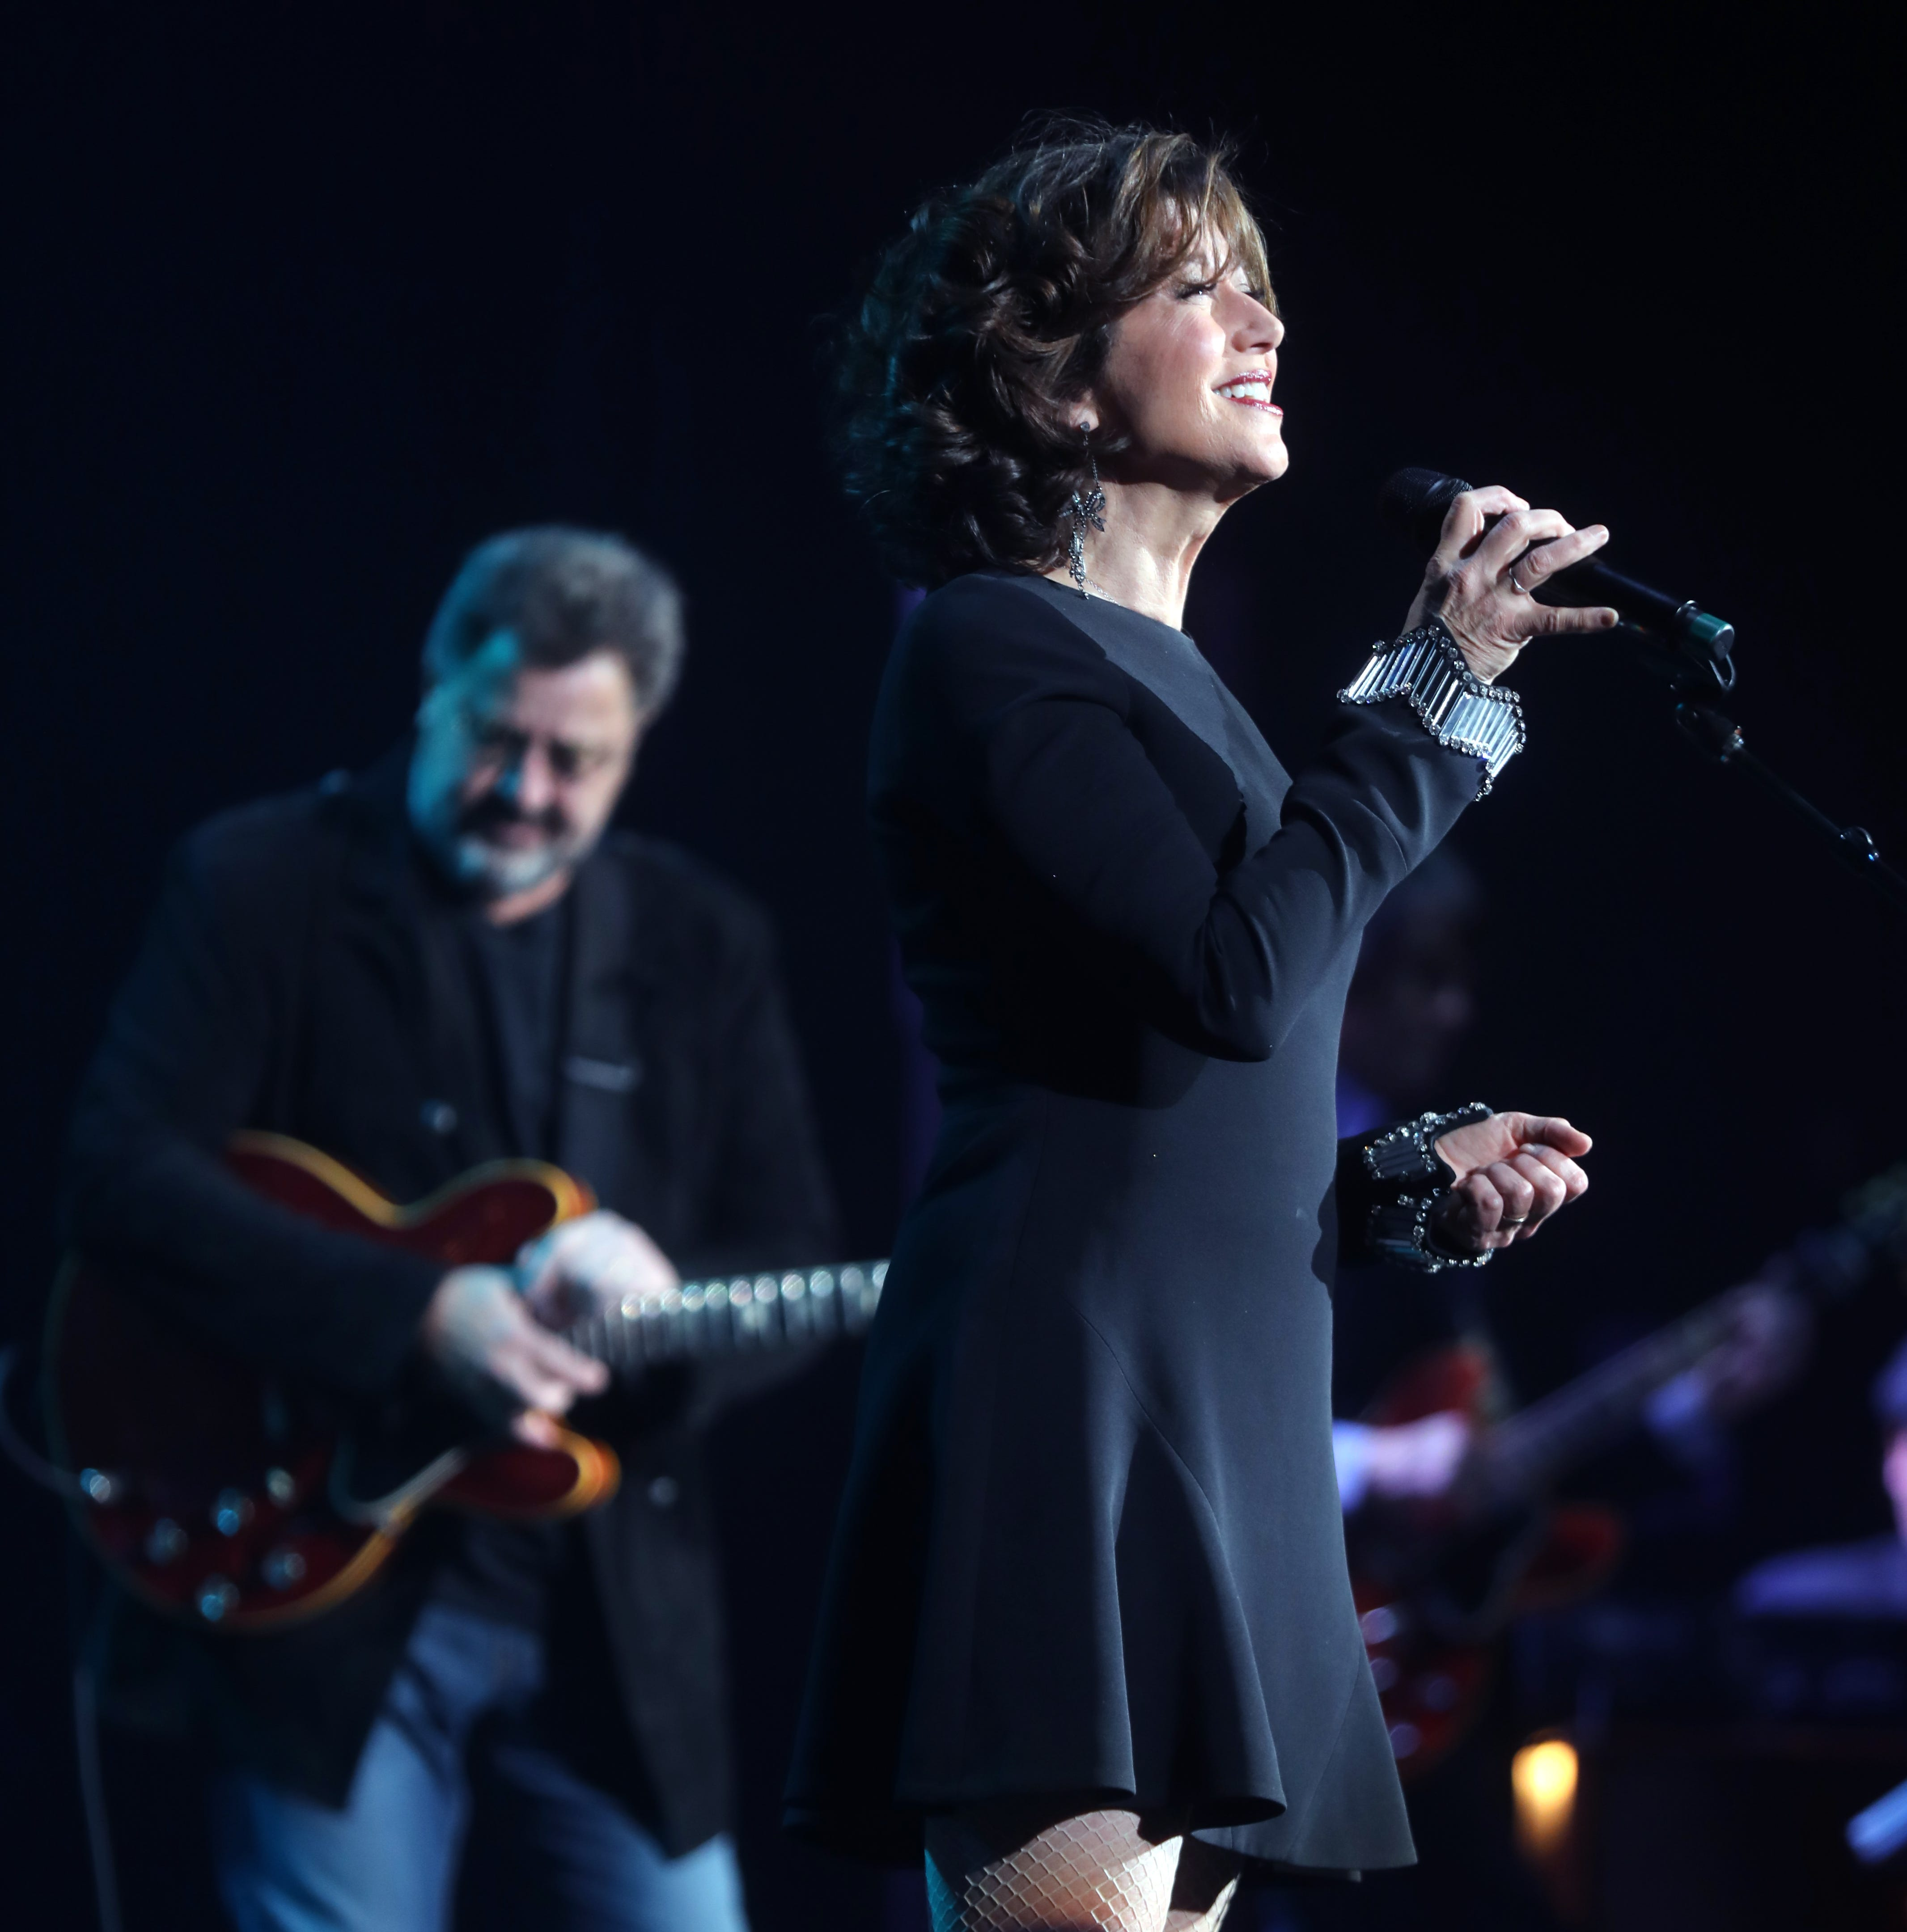 Amy Grant and Vince Gill make snowballs, Christmas memories at Ryman Auditorium